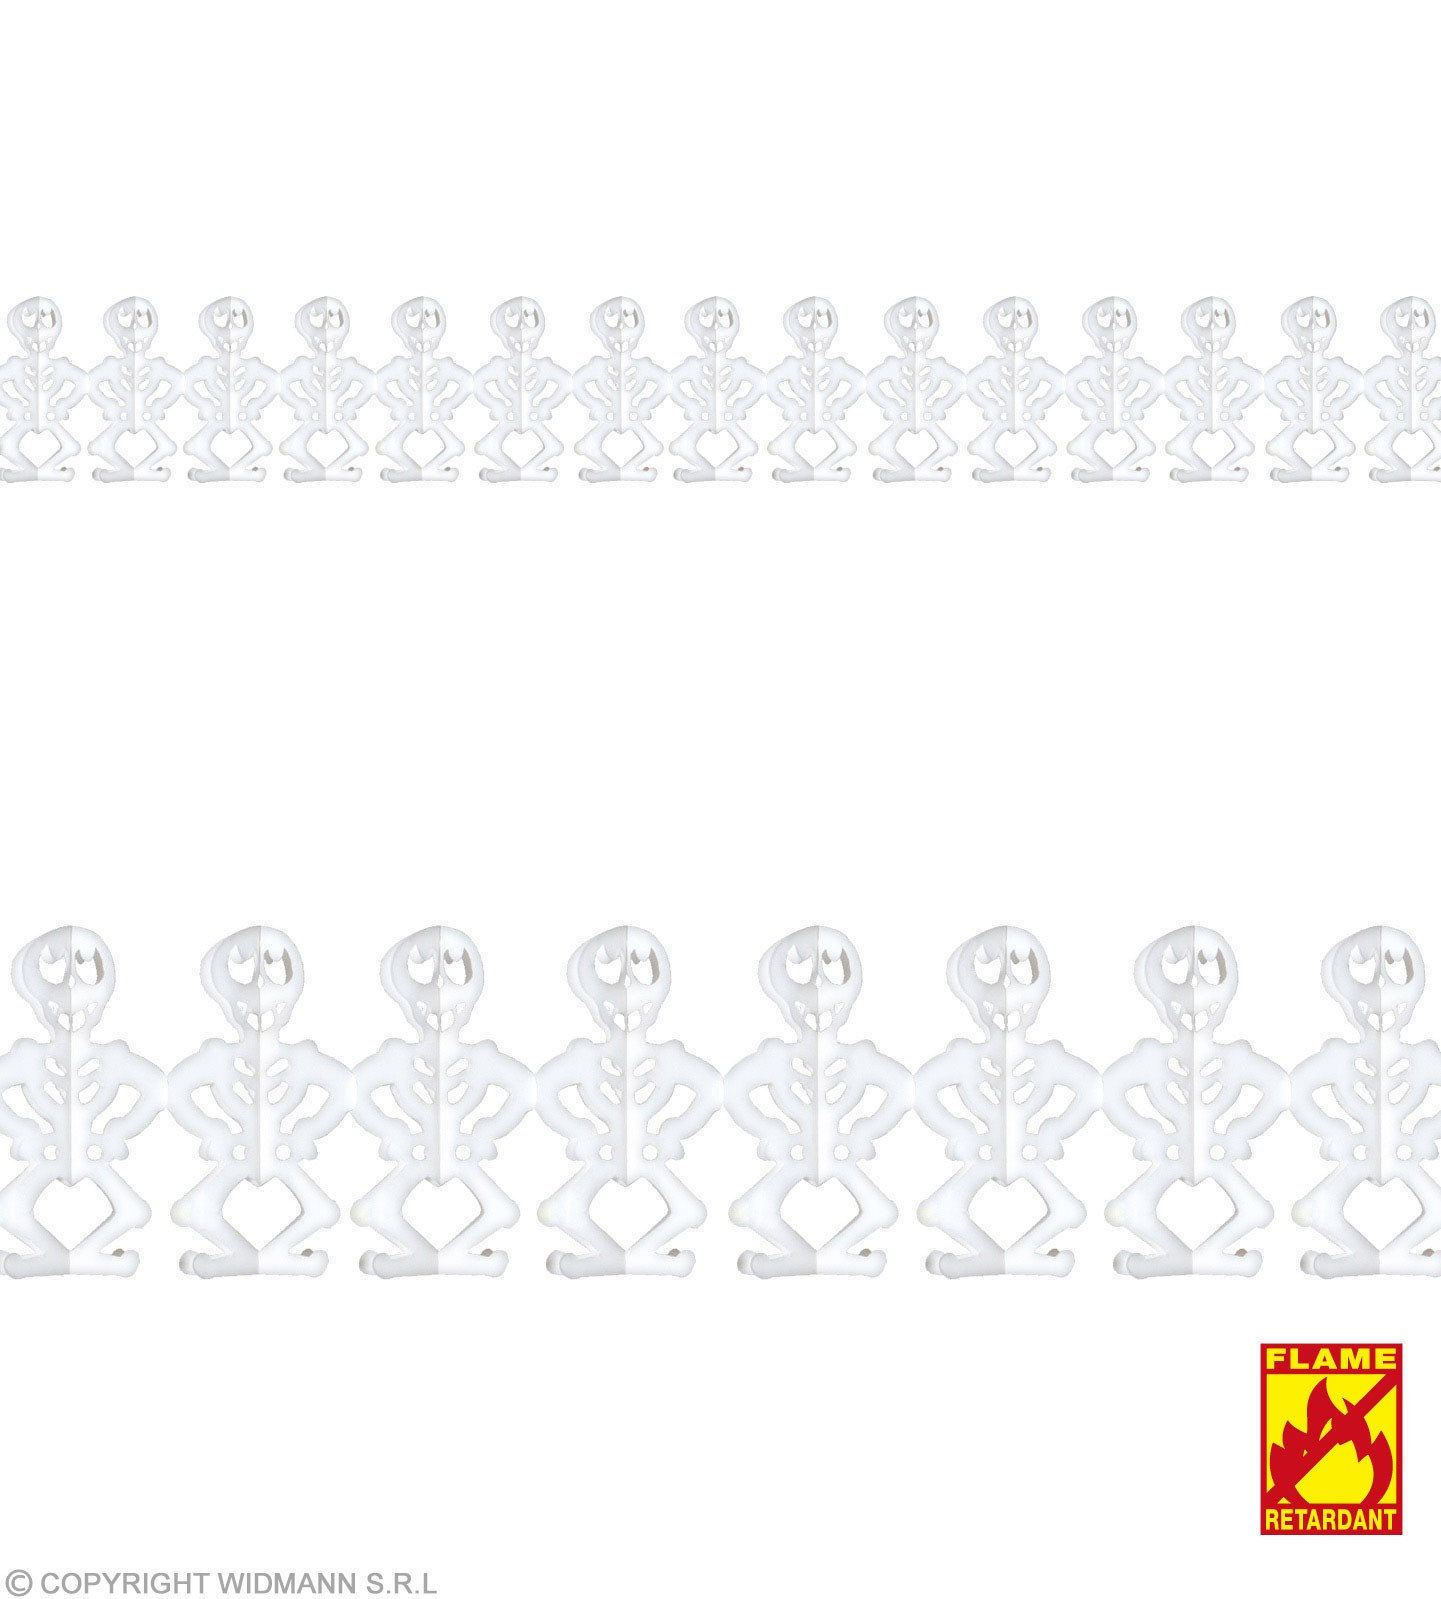 Garland 3M Flme Ret Skeleton - Fancy Dress (Halloween)